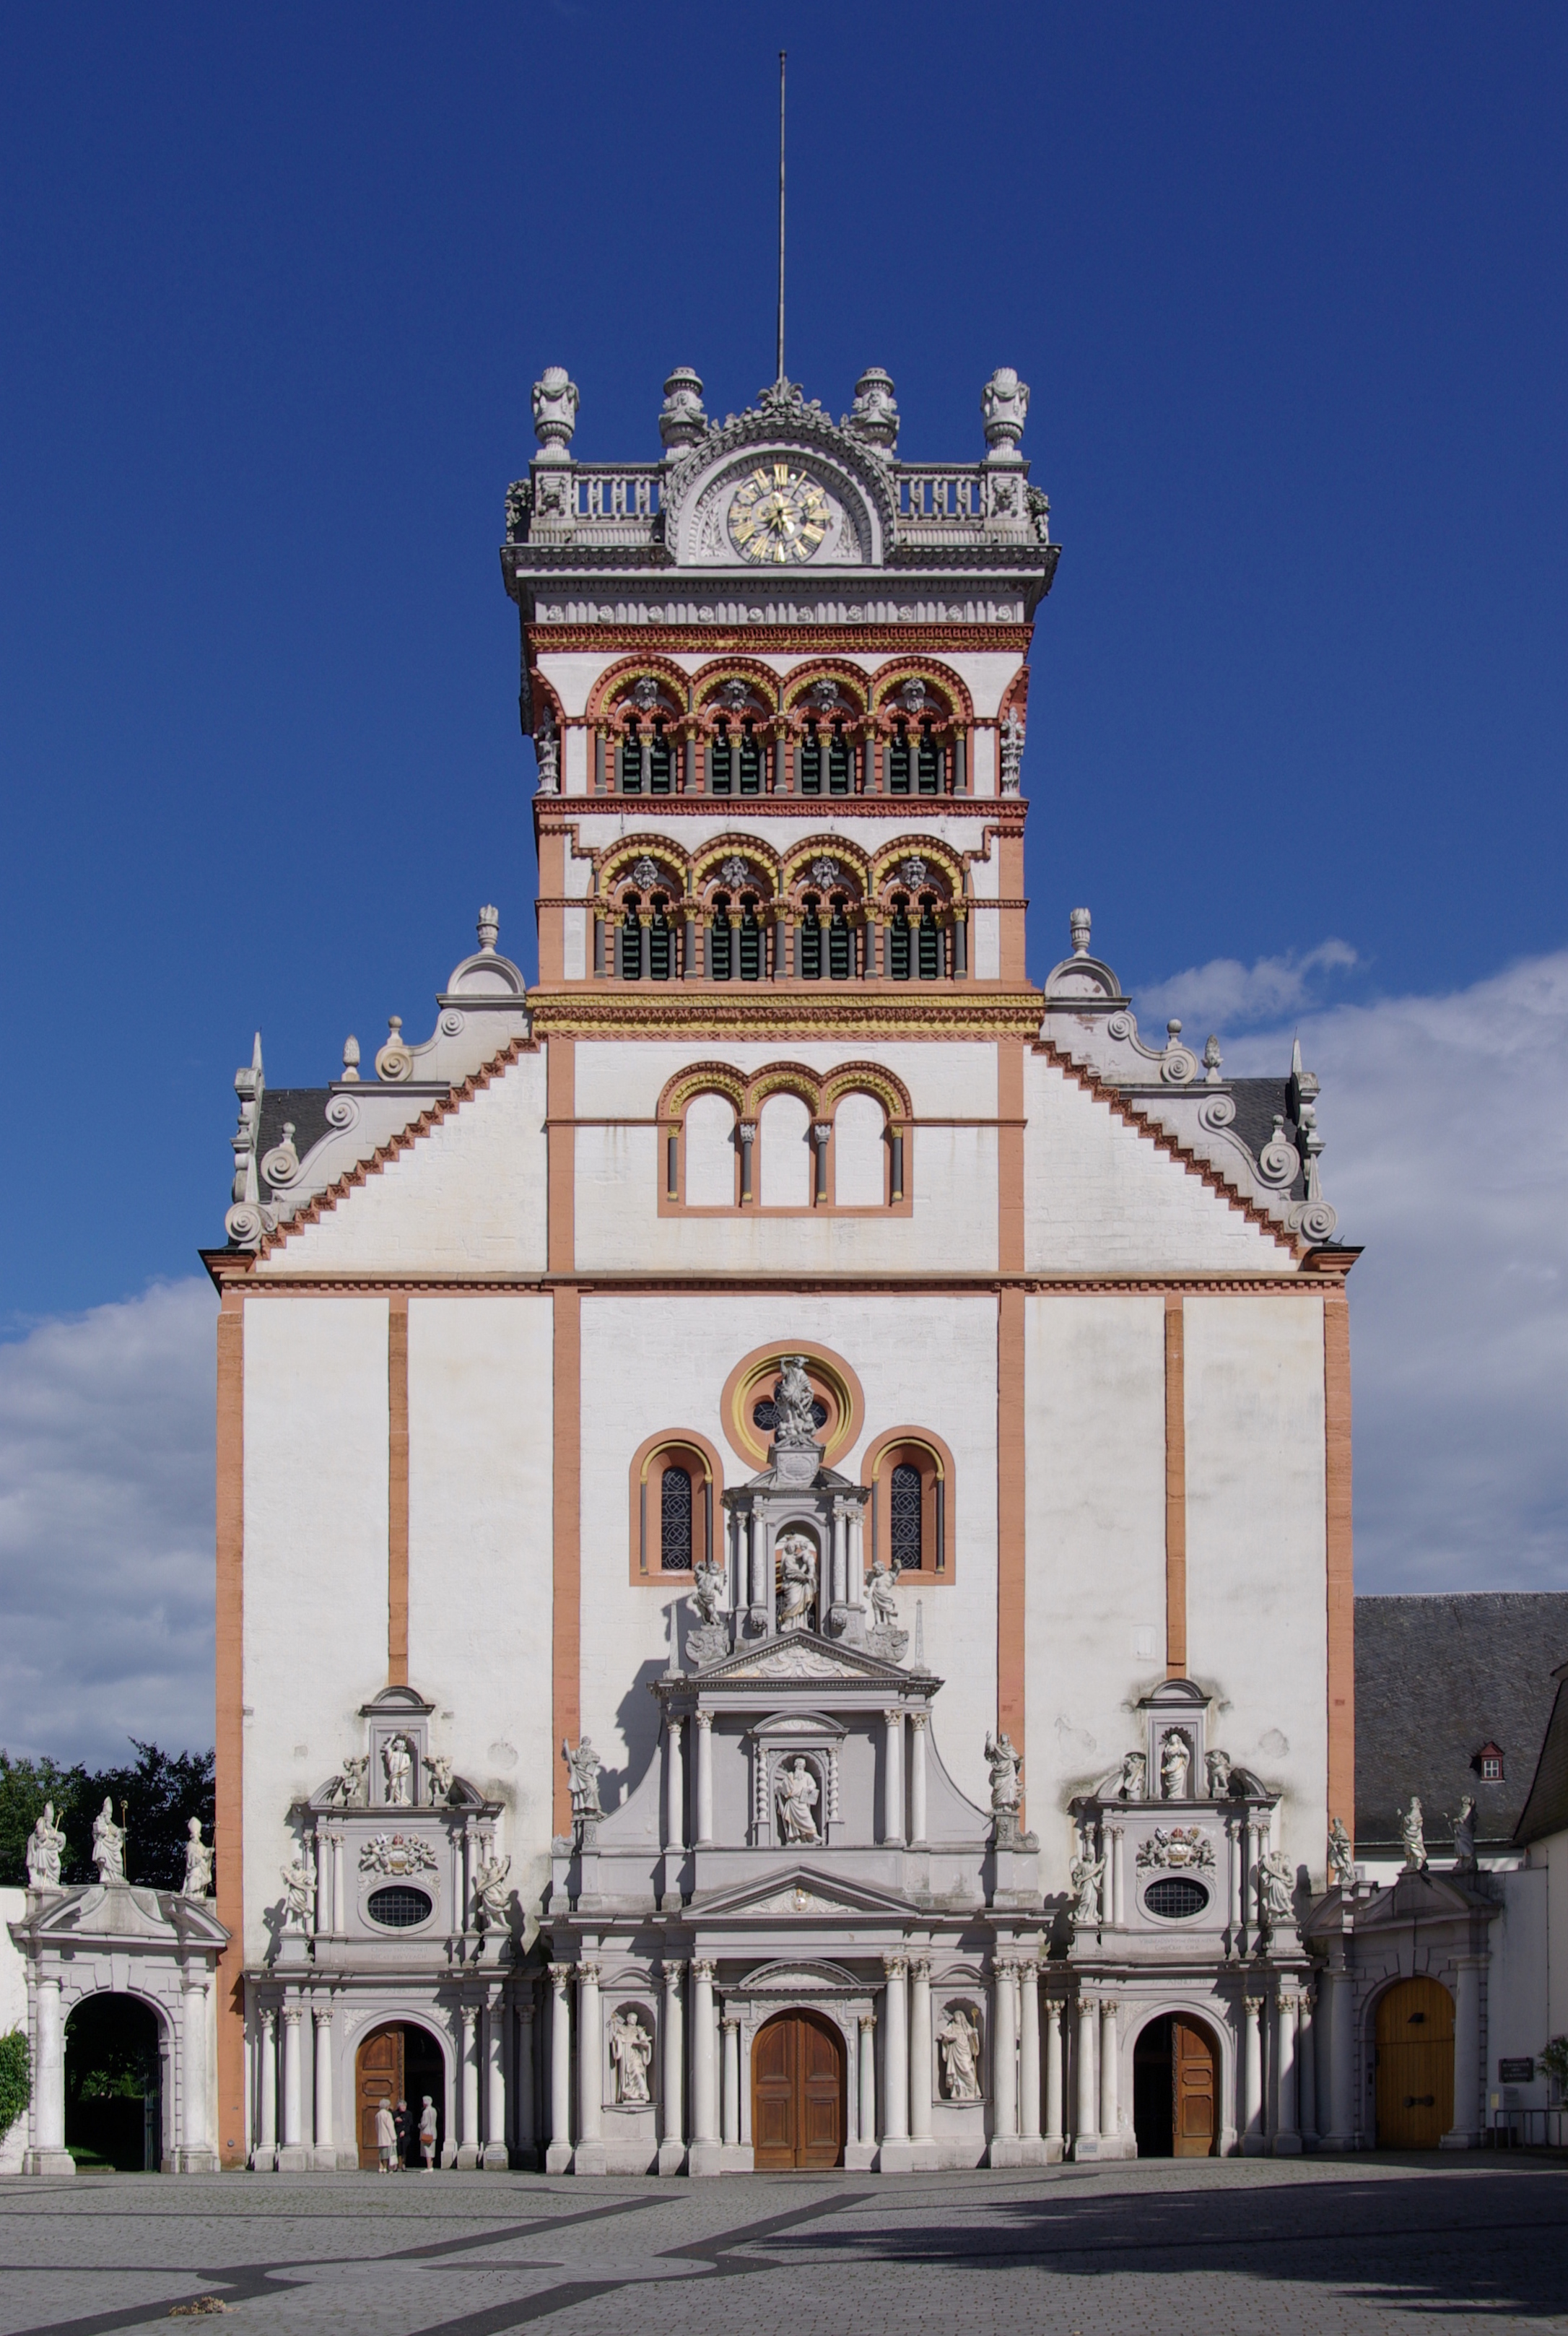 Saint Matthias church in Trier, Germany via Wikimedia Commons